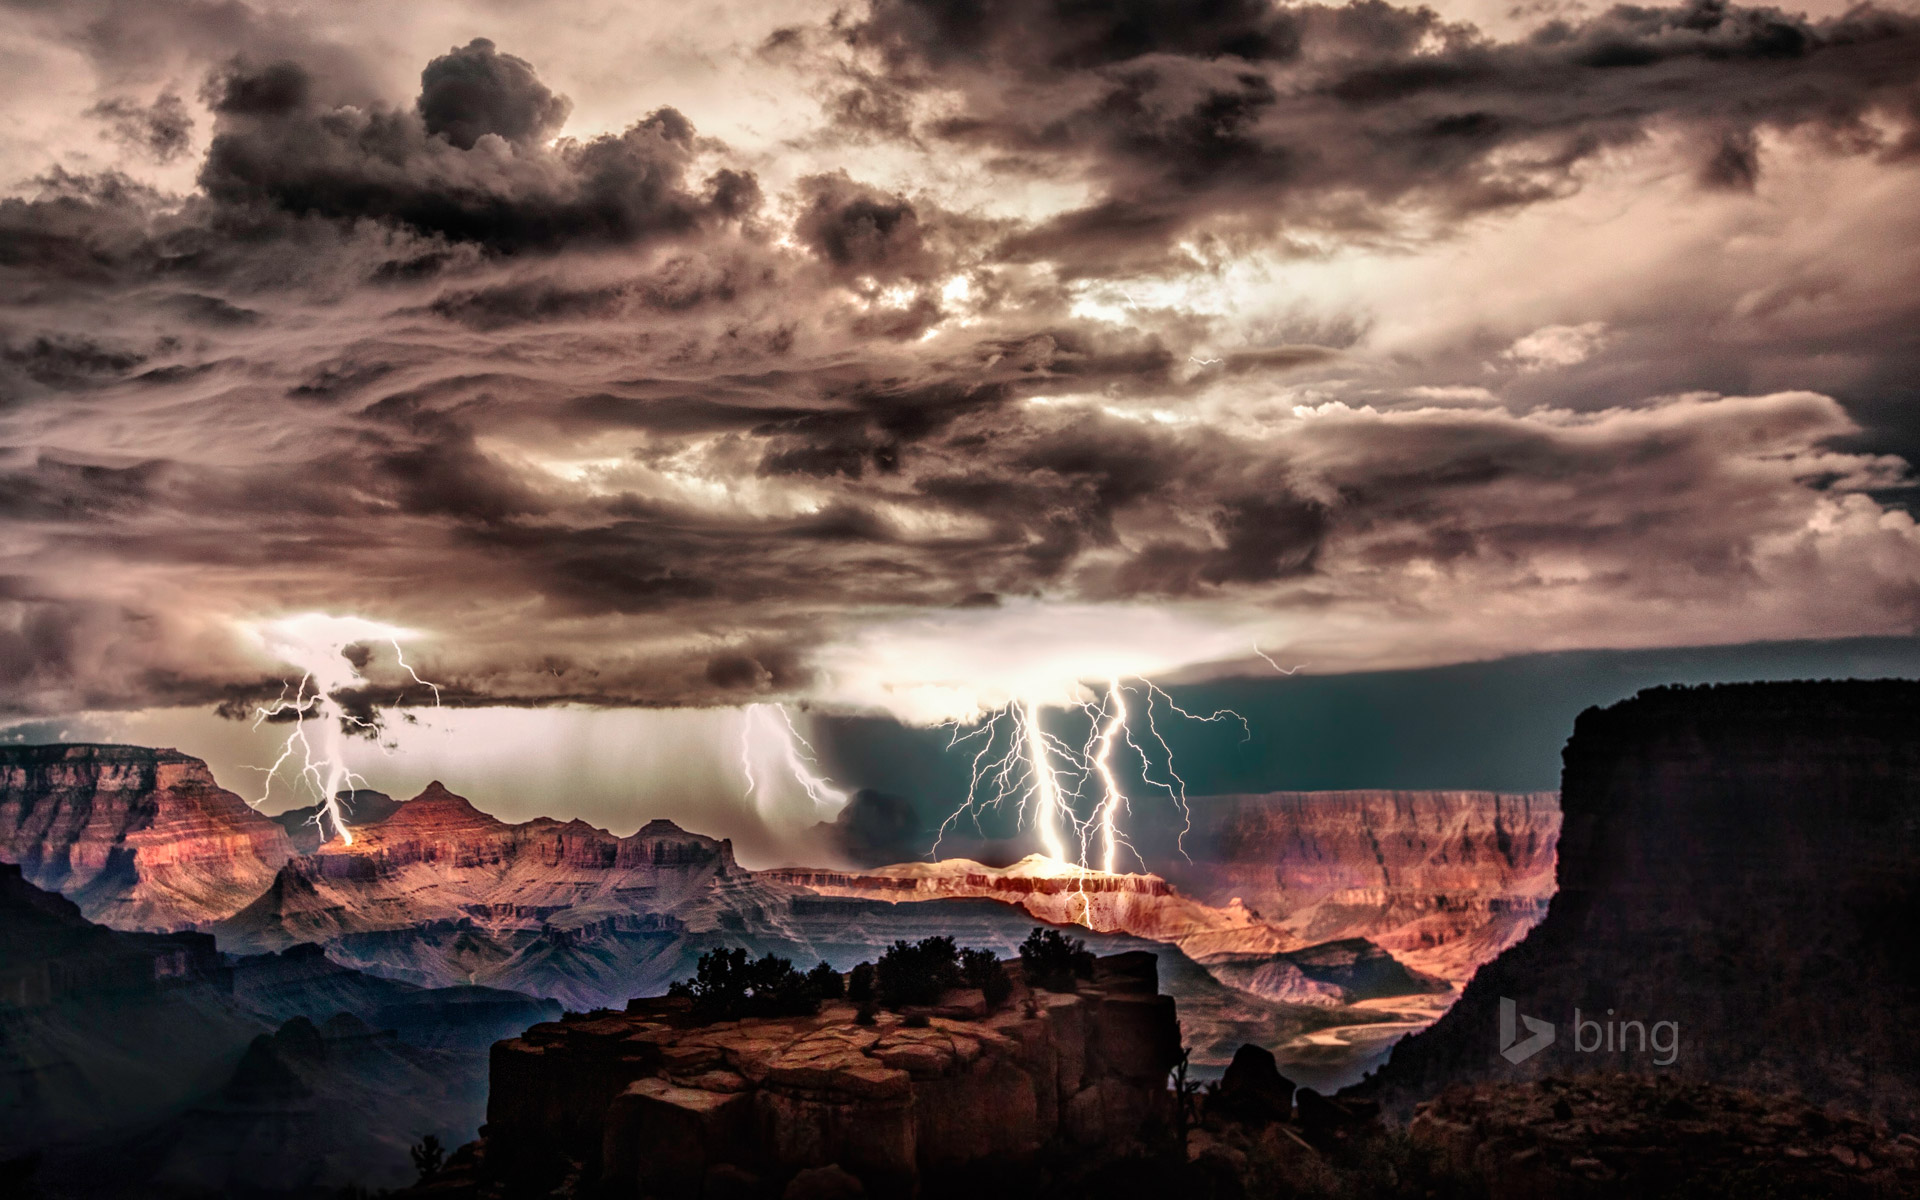 lightning storm over grand canyon national park arizona scott rh sonurai com Storm Wallpaper Lightning Desktop